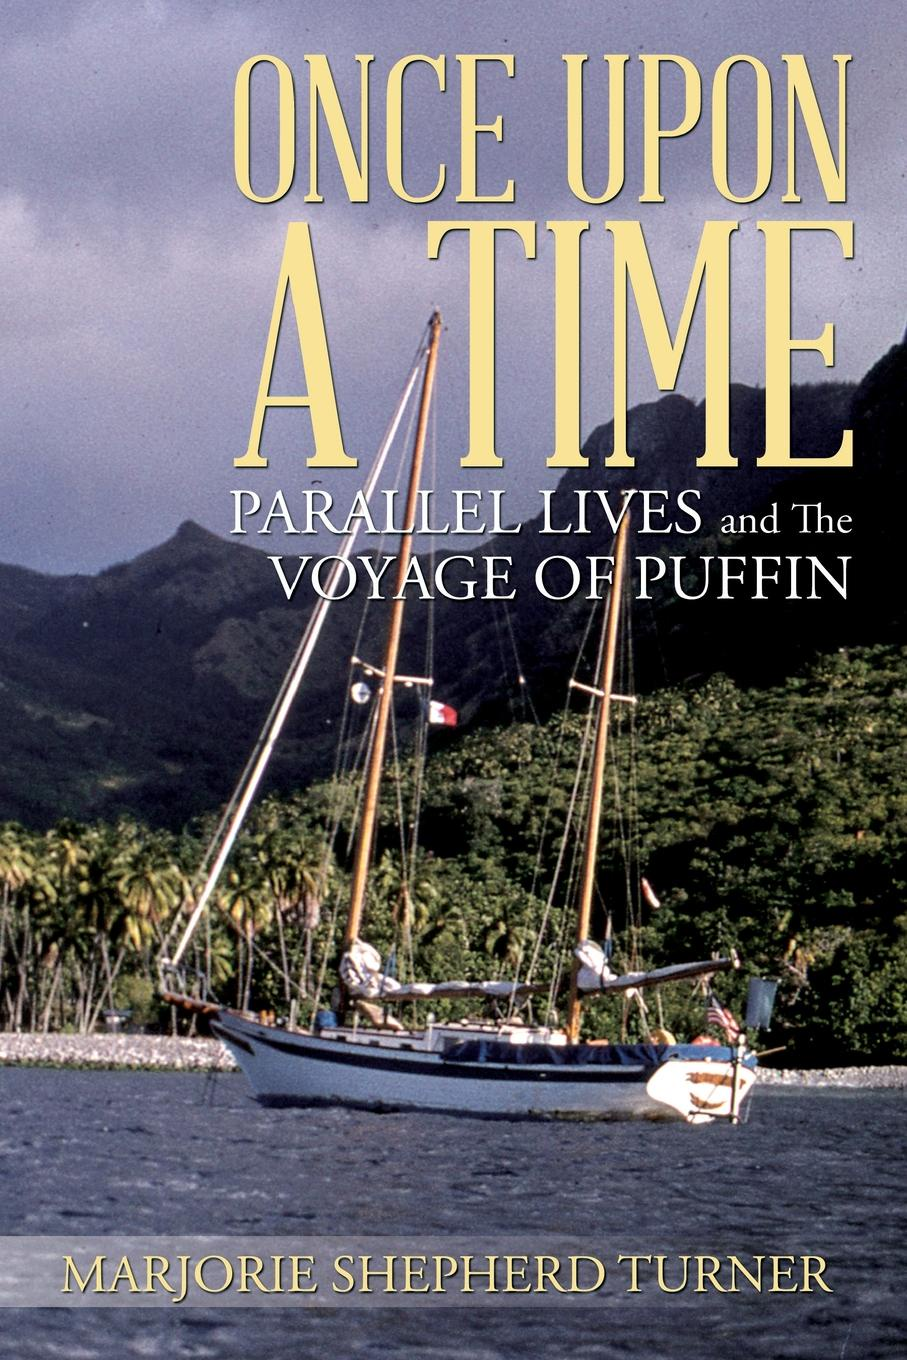 Marjorie Shepherd Turner Once Upon a Time. Parallel Lives and the Voyage of Puffin путешествие времени voyage of time life